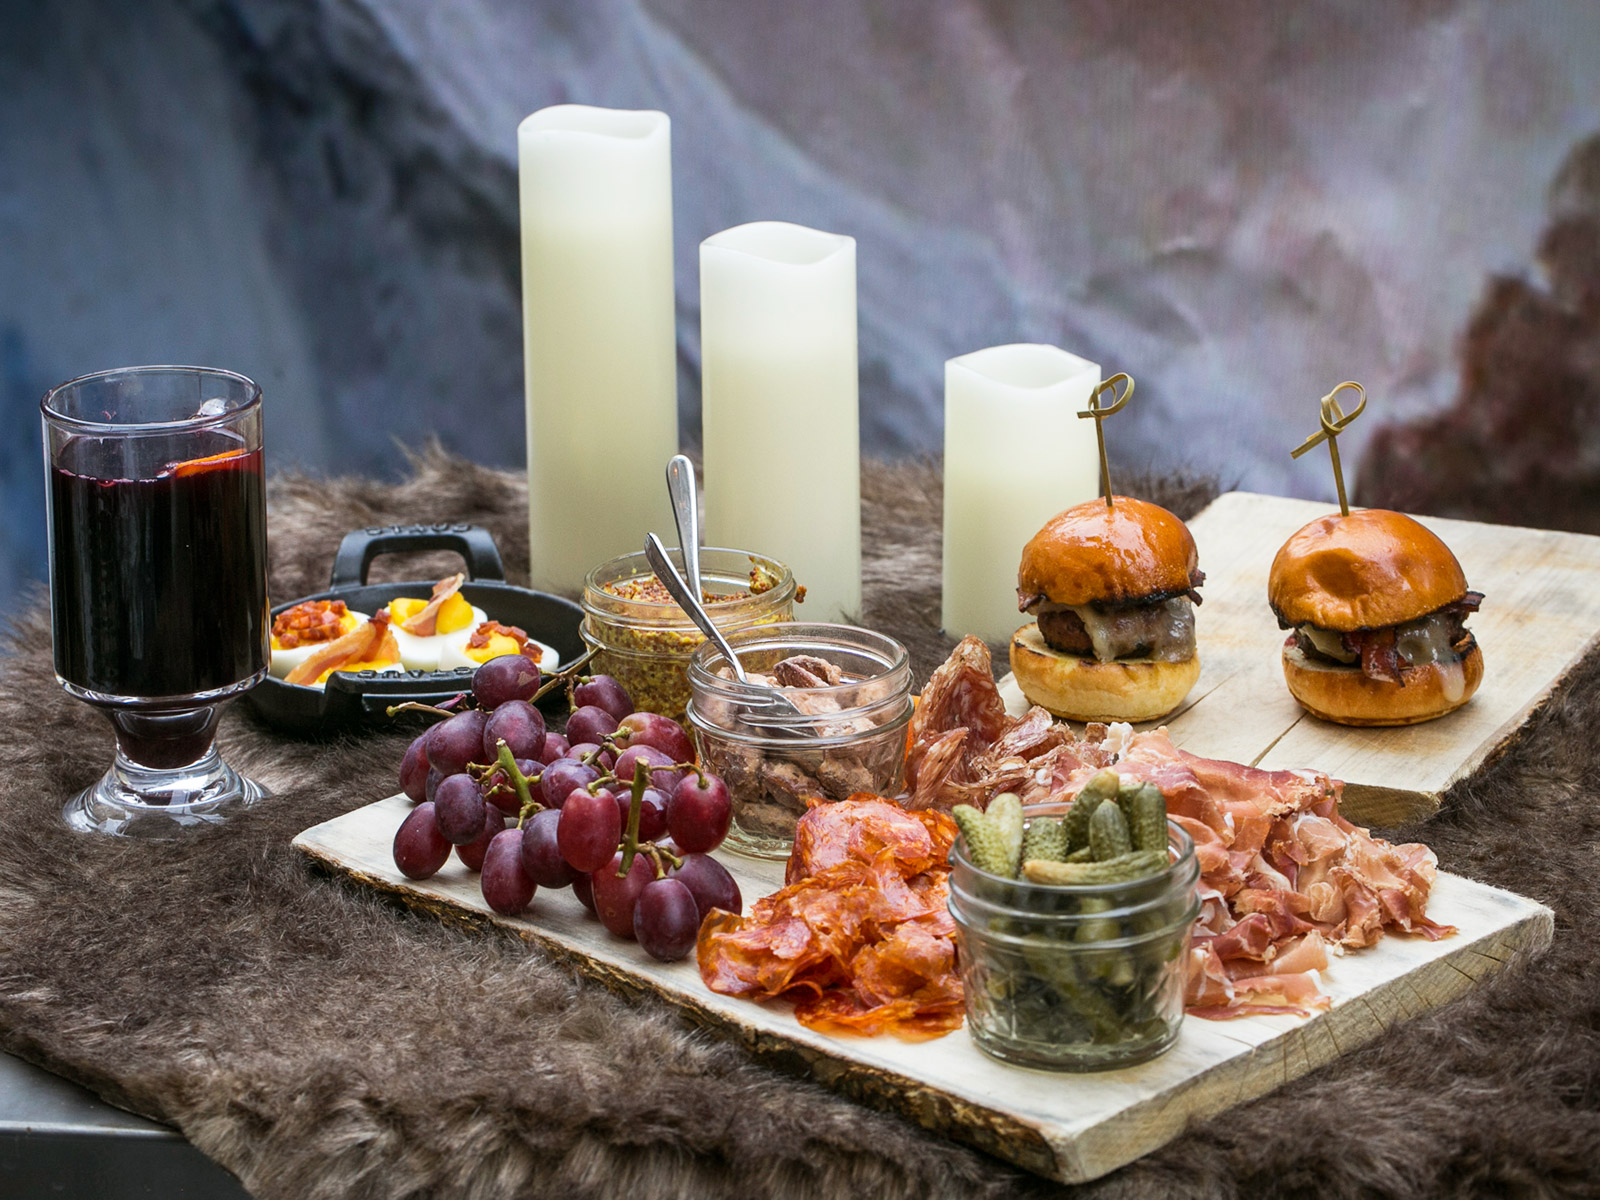 Warm Up With Cersei's Poison at This Outdoor 'Game of Thrones' Pop-Up In Boston